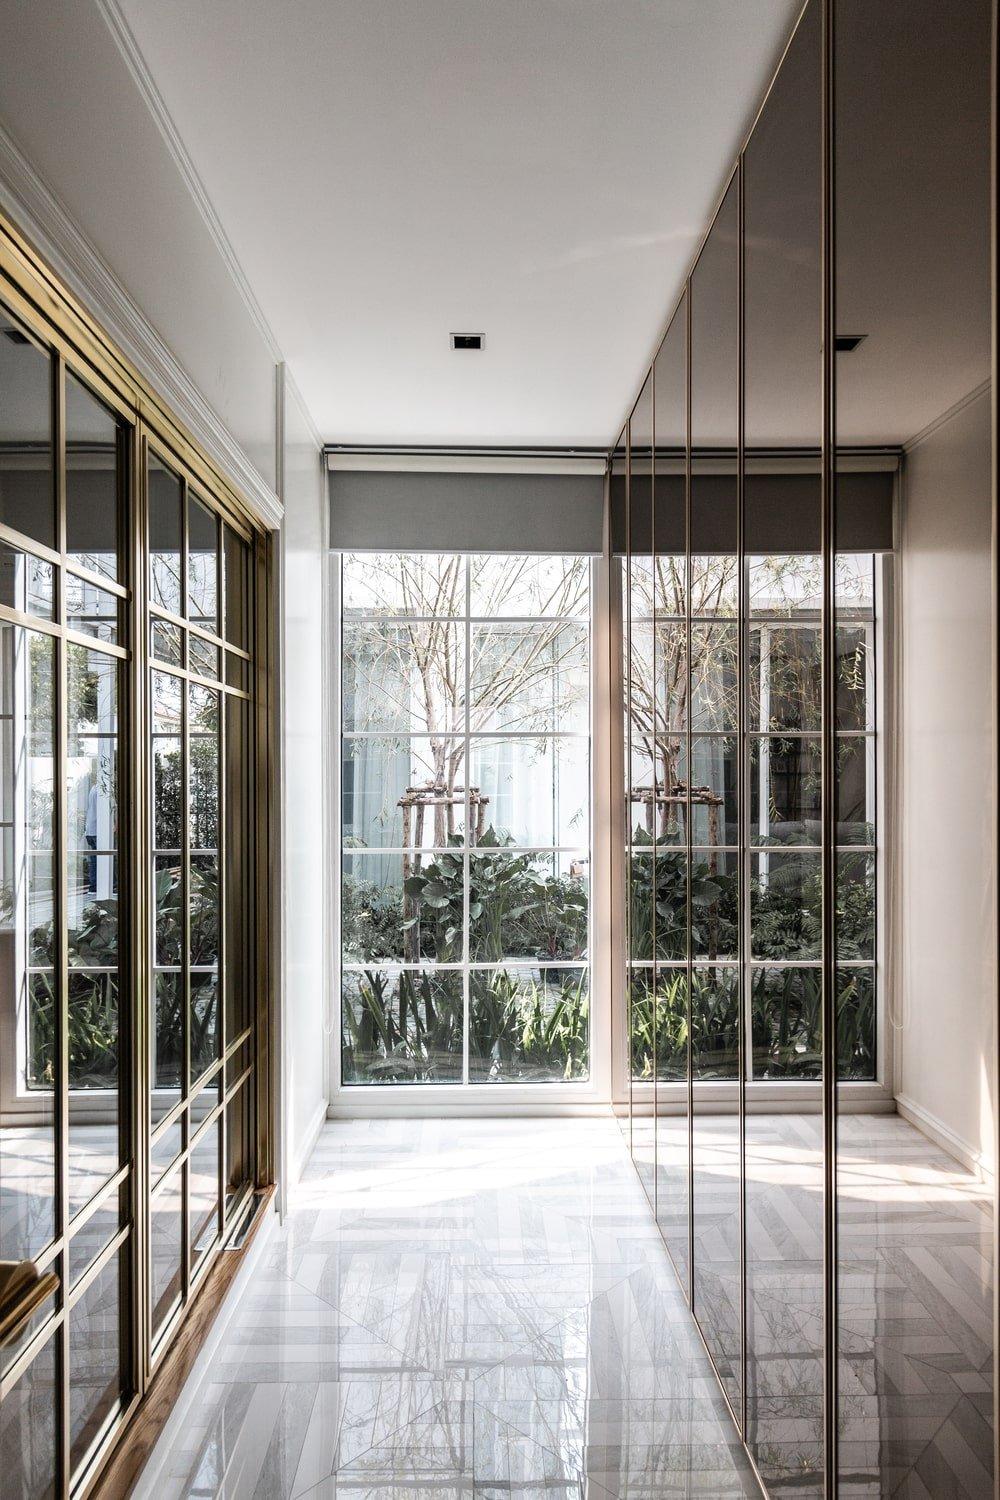 This is an interior view of the house showcasing a hallway filled with glass on both sides.